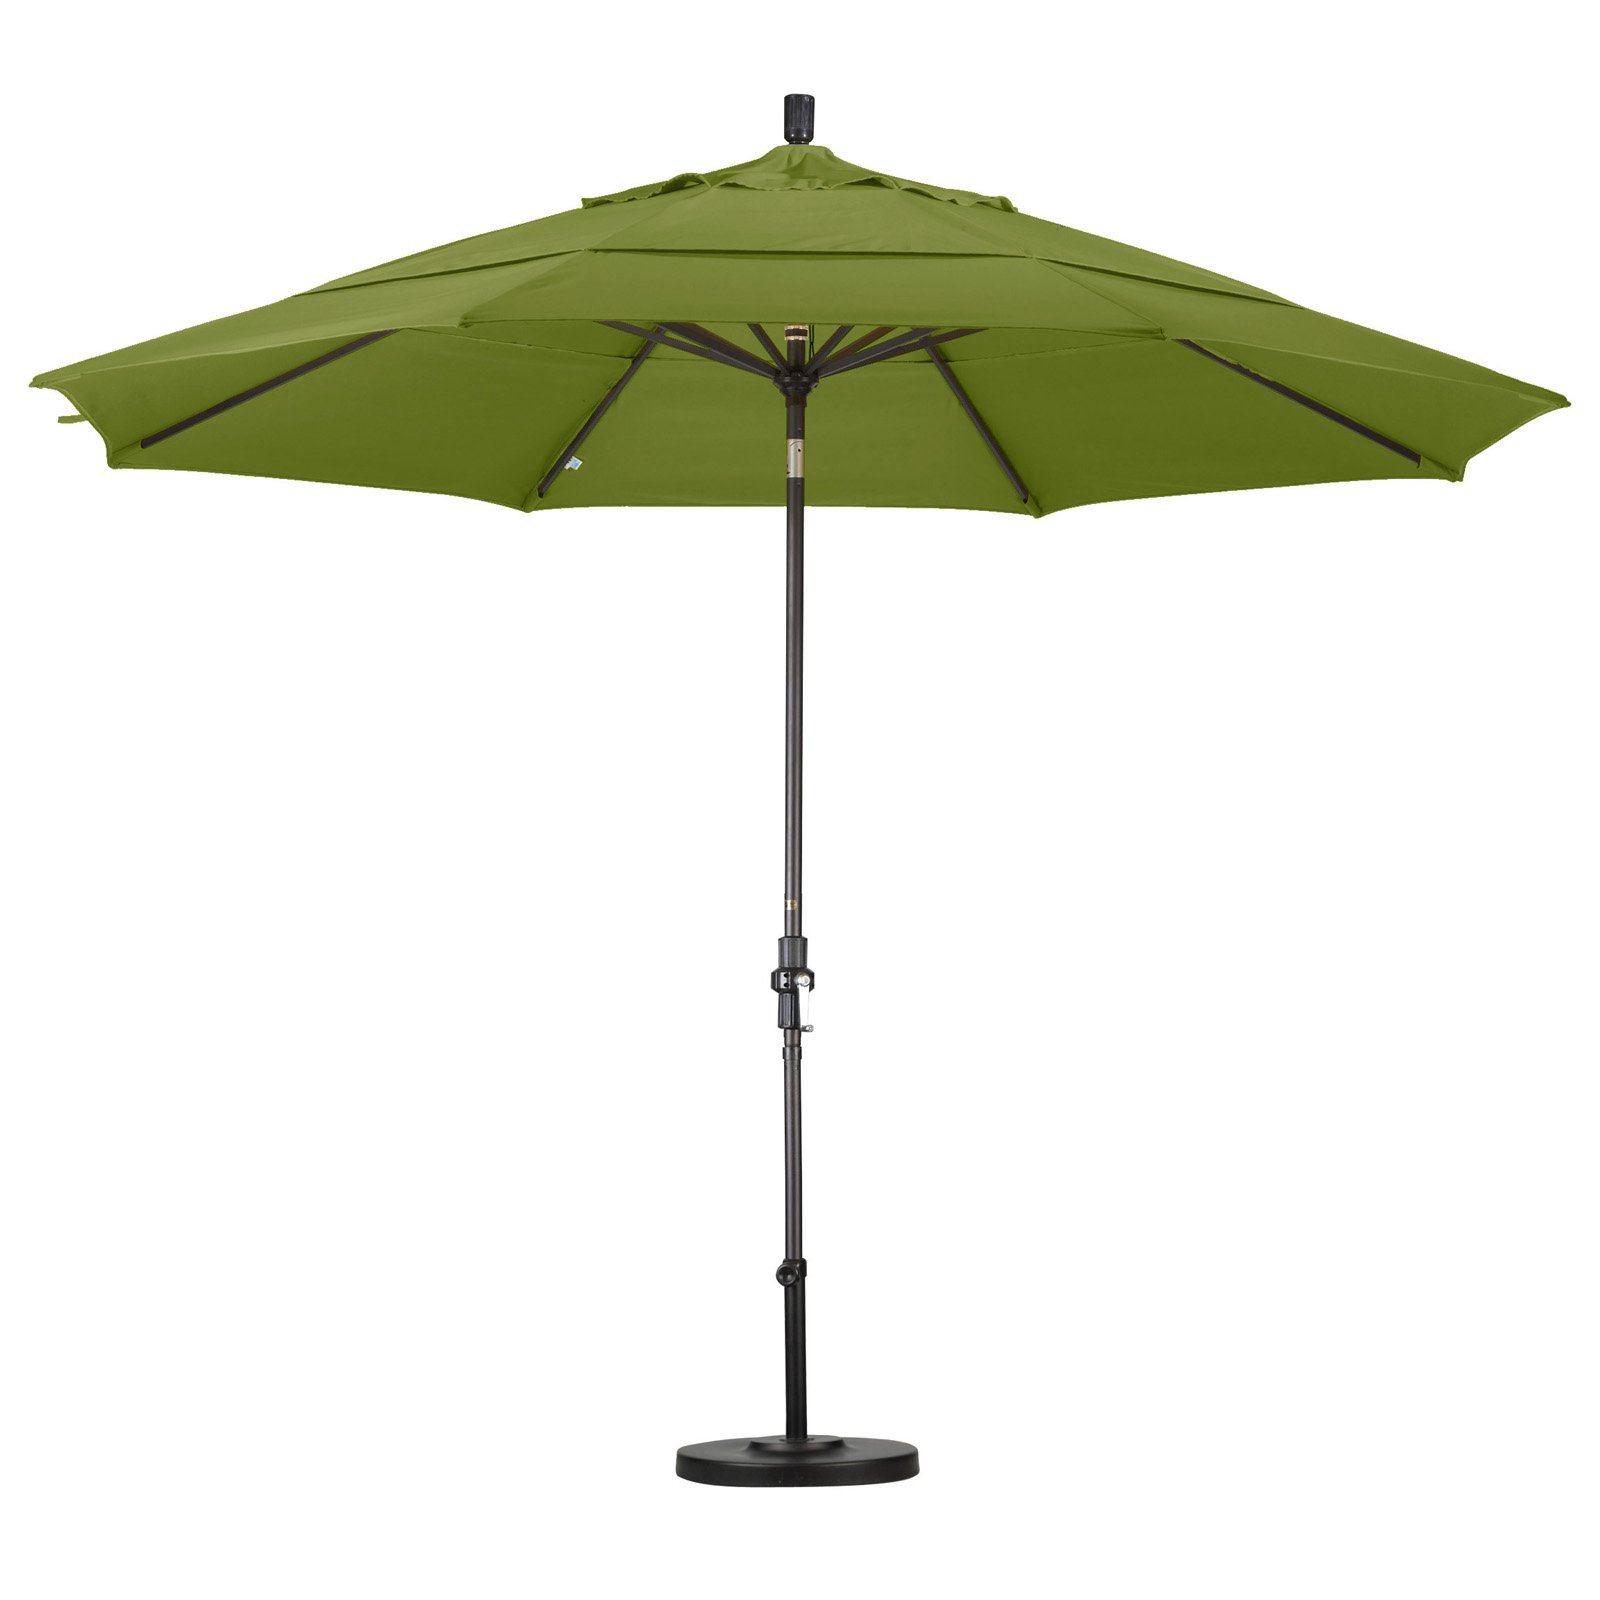 California Umbrella 11' Market Patio Umbrella in Tuscan